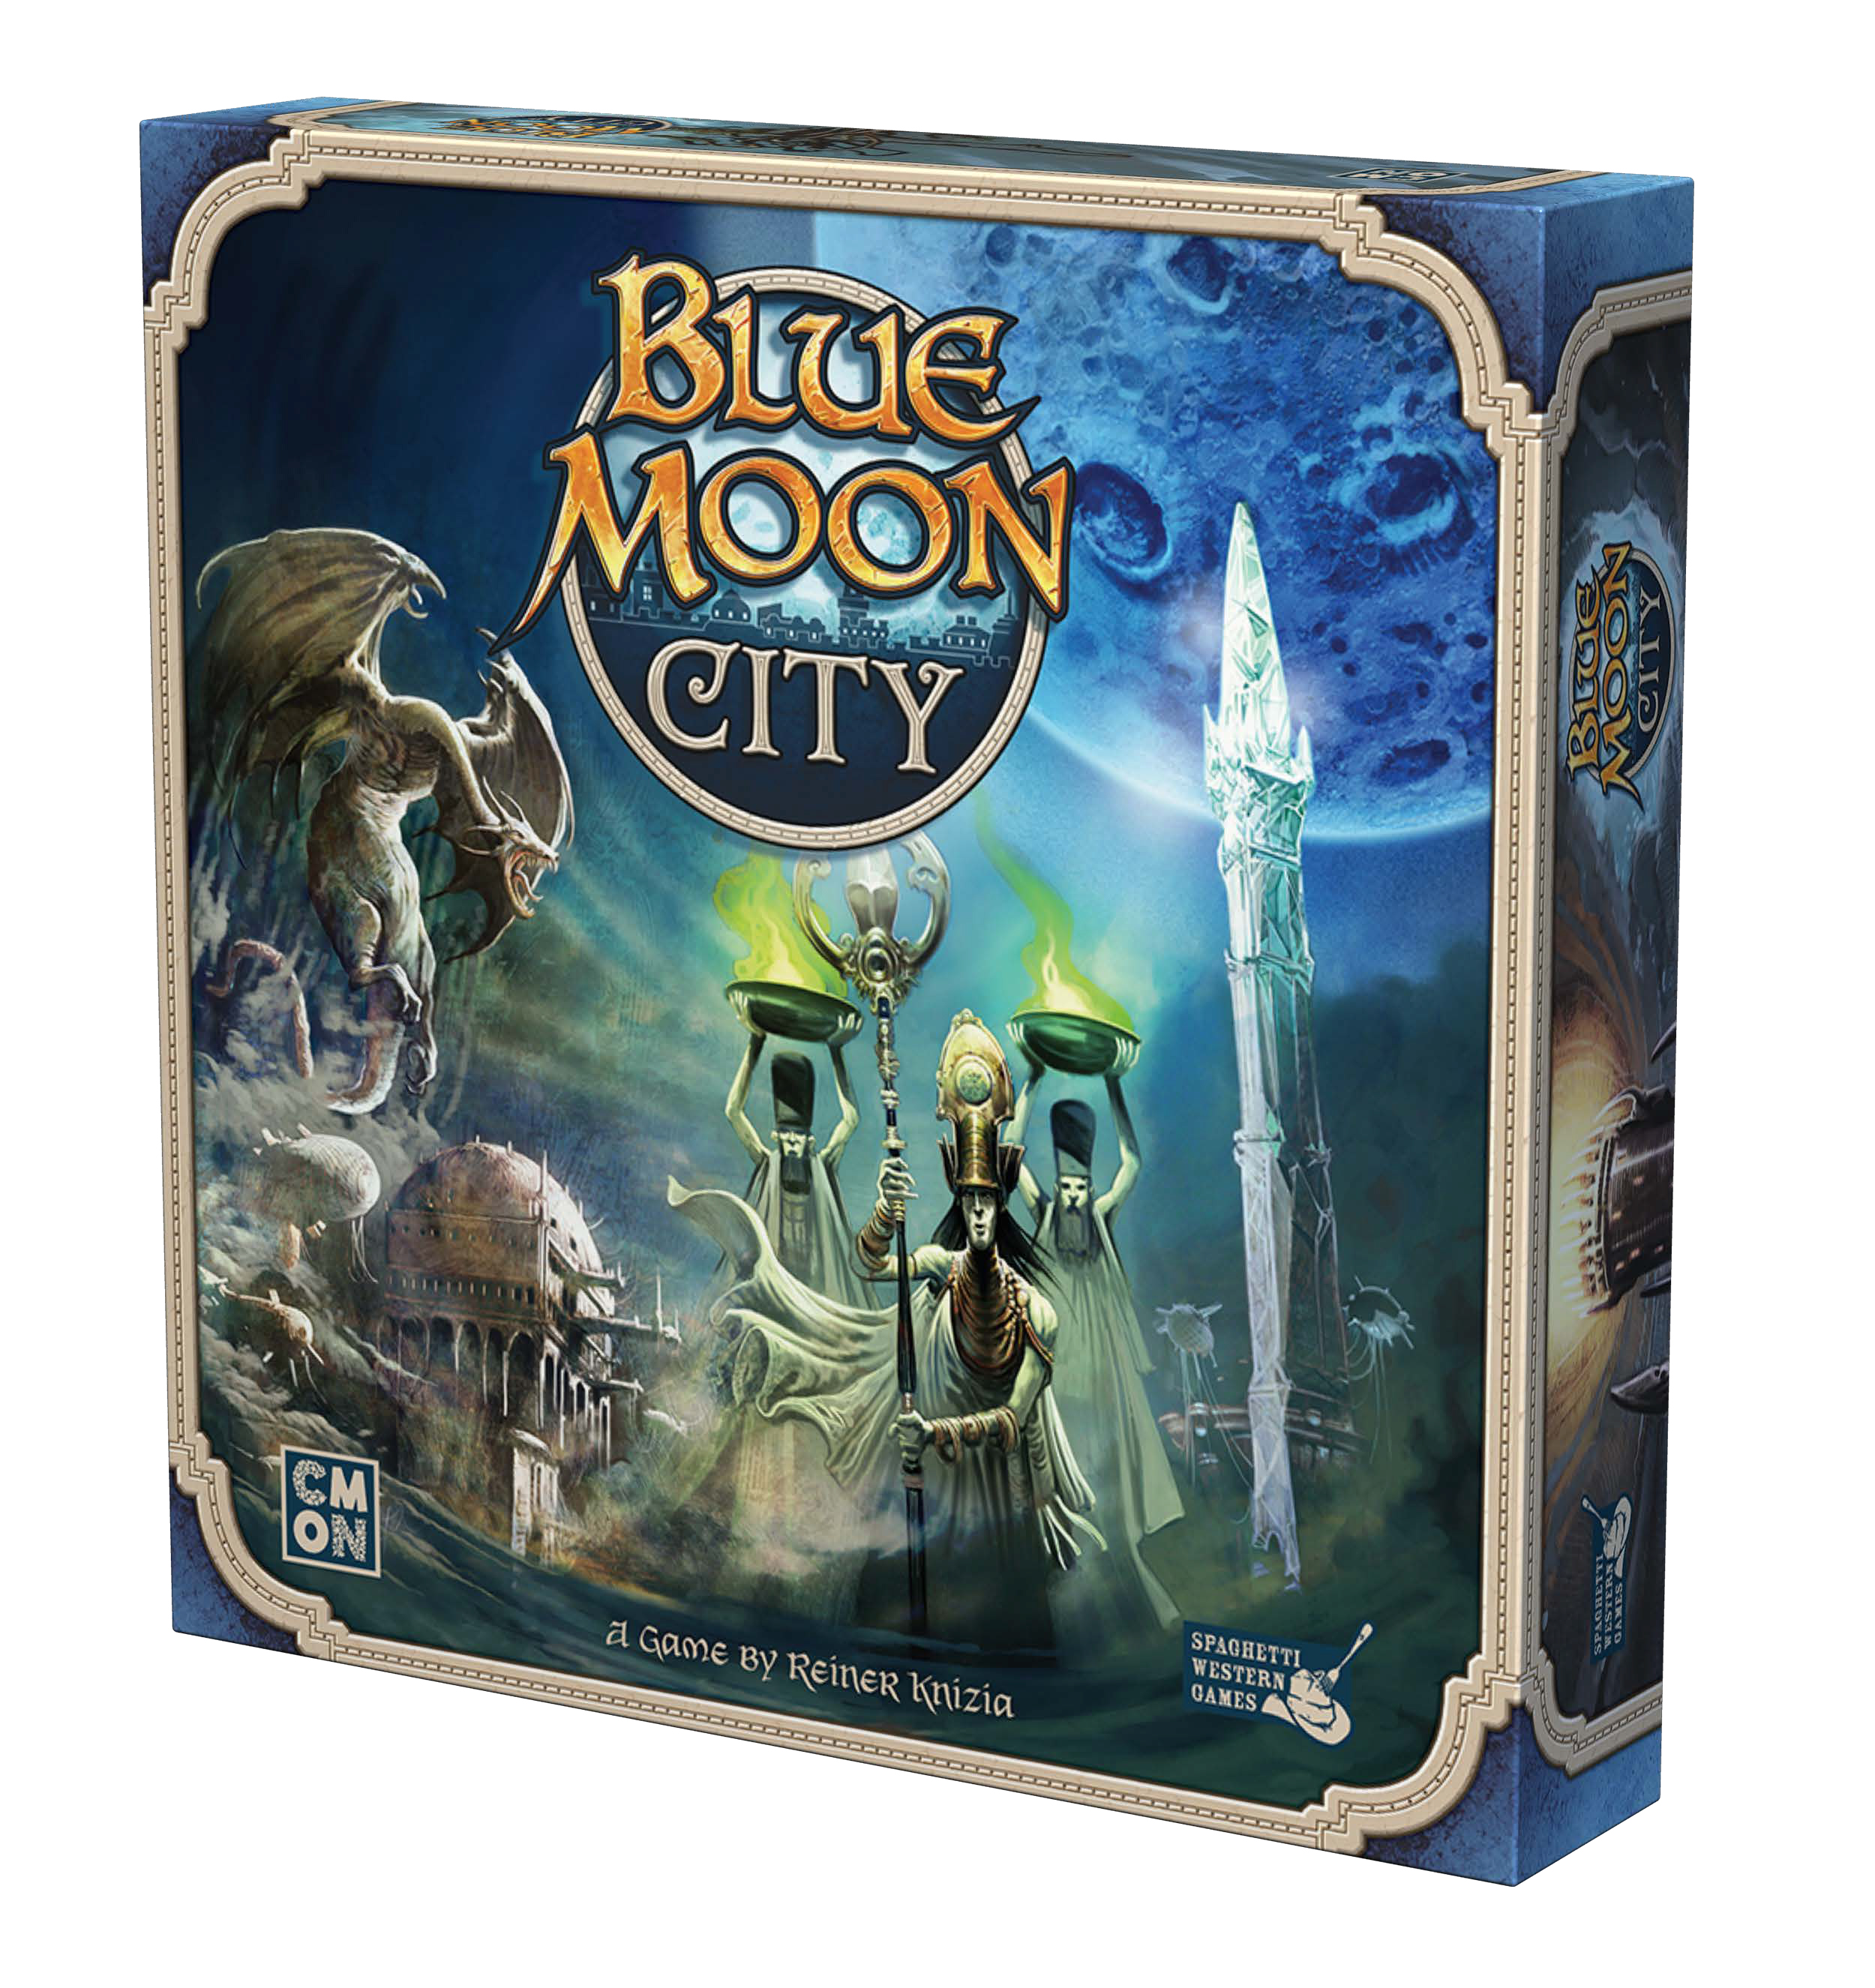 Blue Moon City Demo Copy Game Box